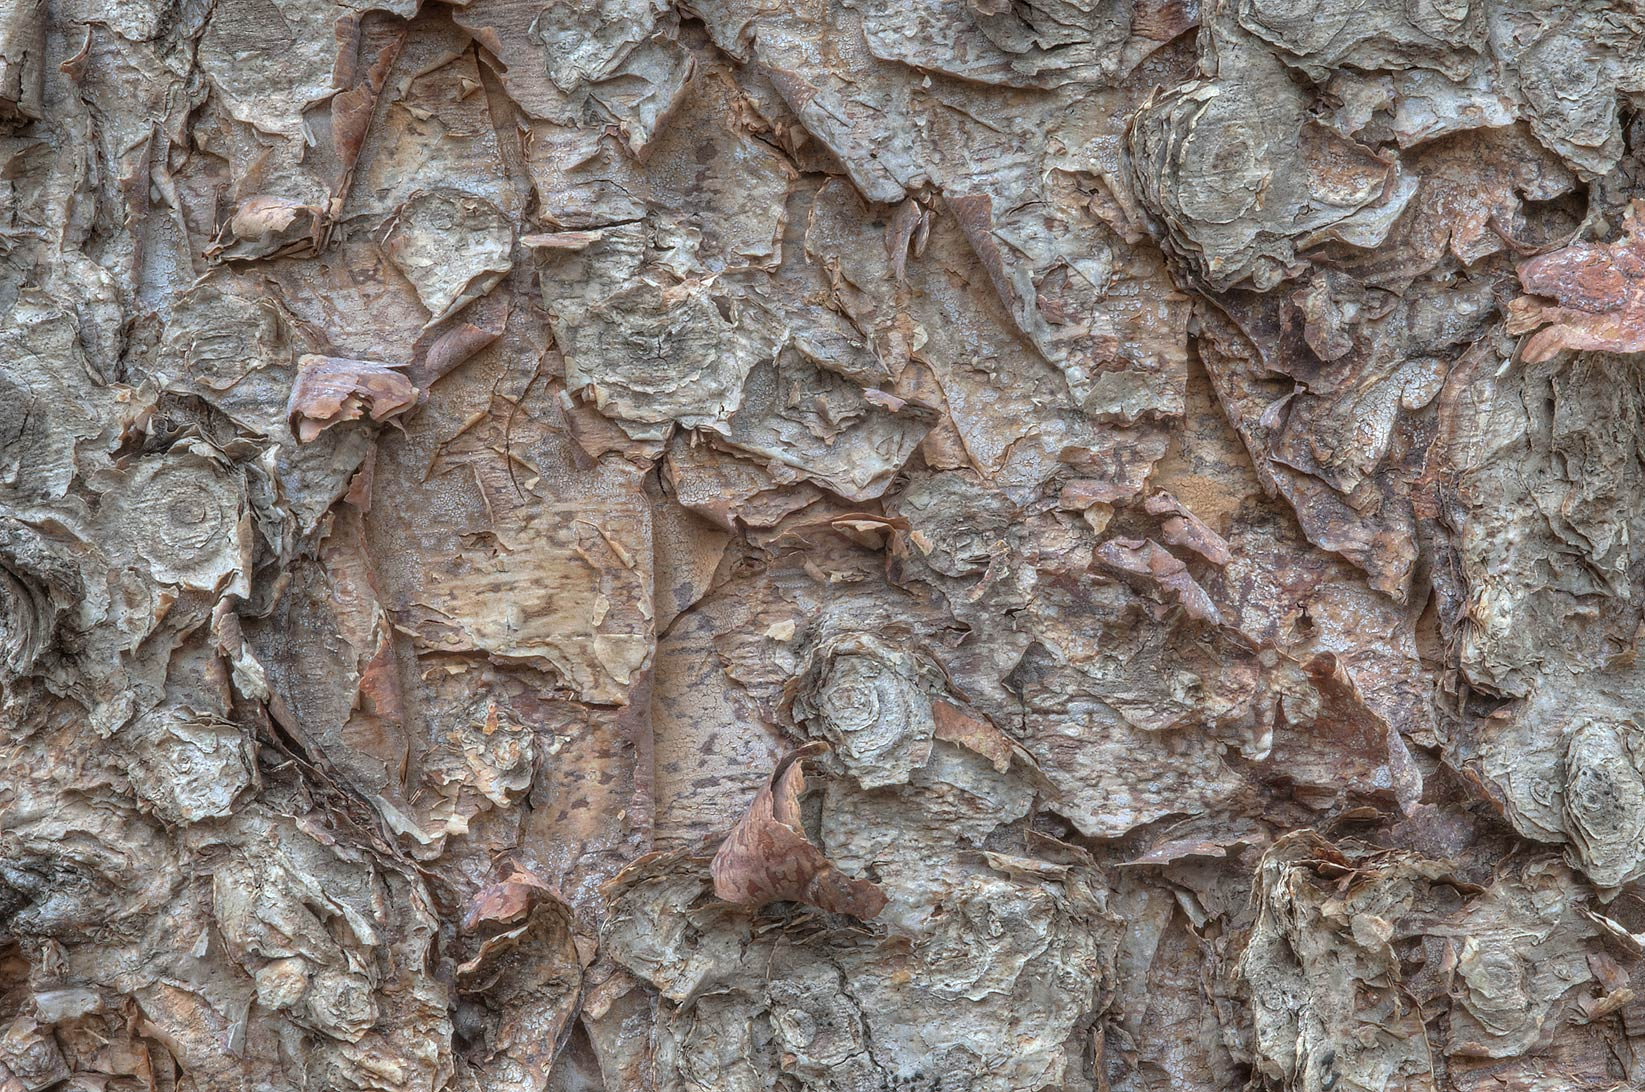 Papery texture of bark of river birch (Betula...Creek Park. College Station, Texas